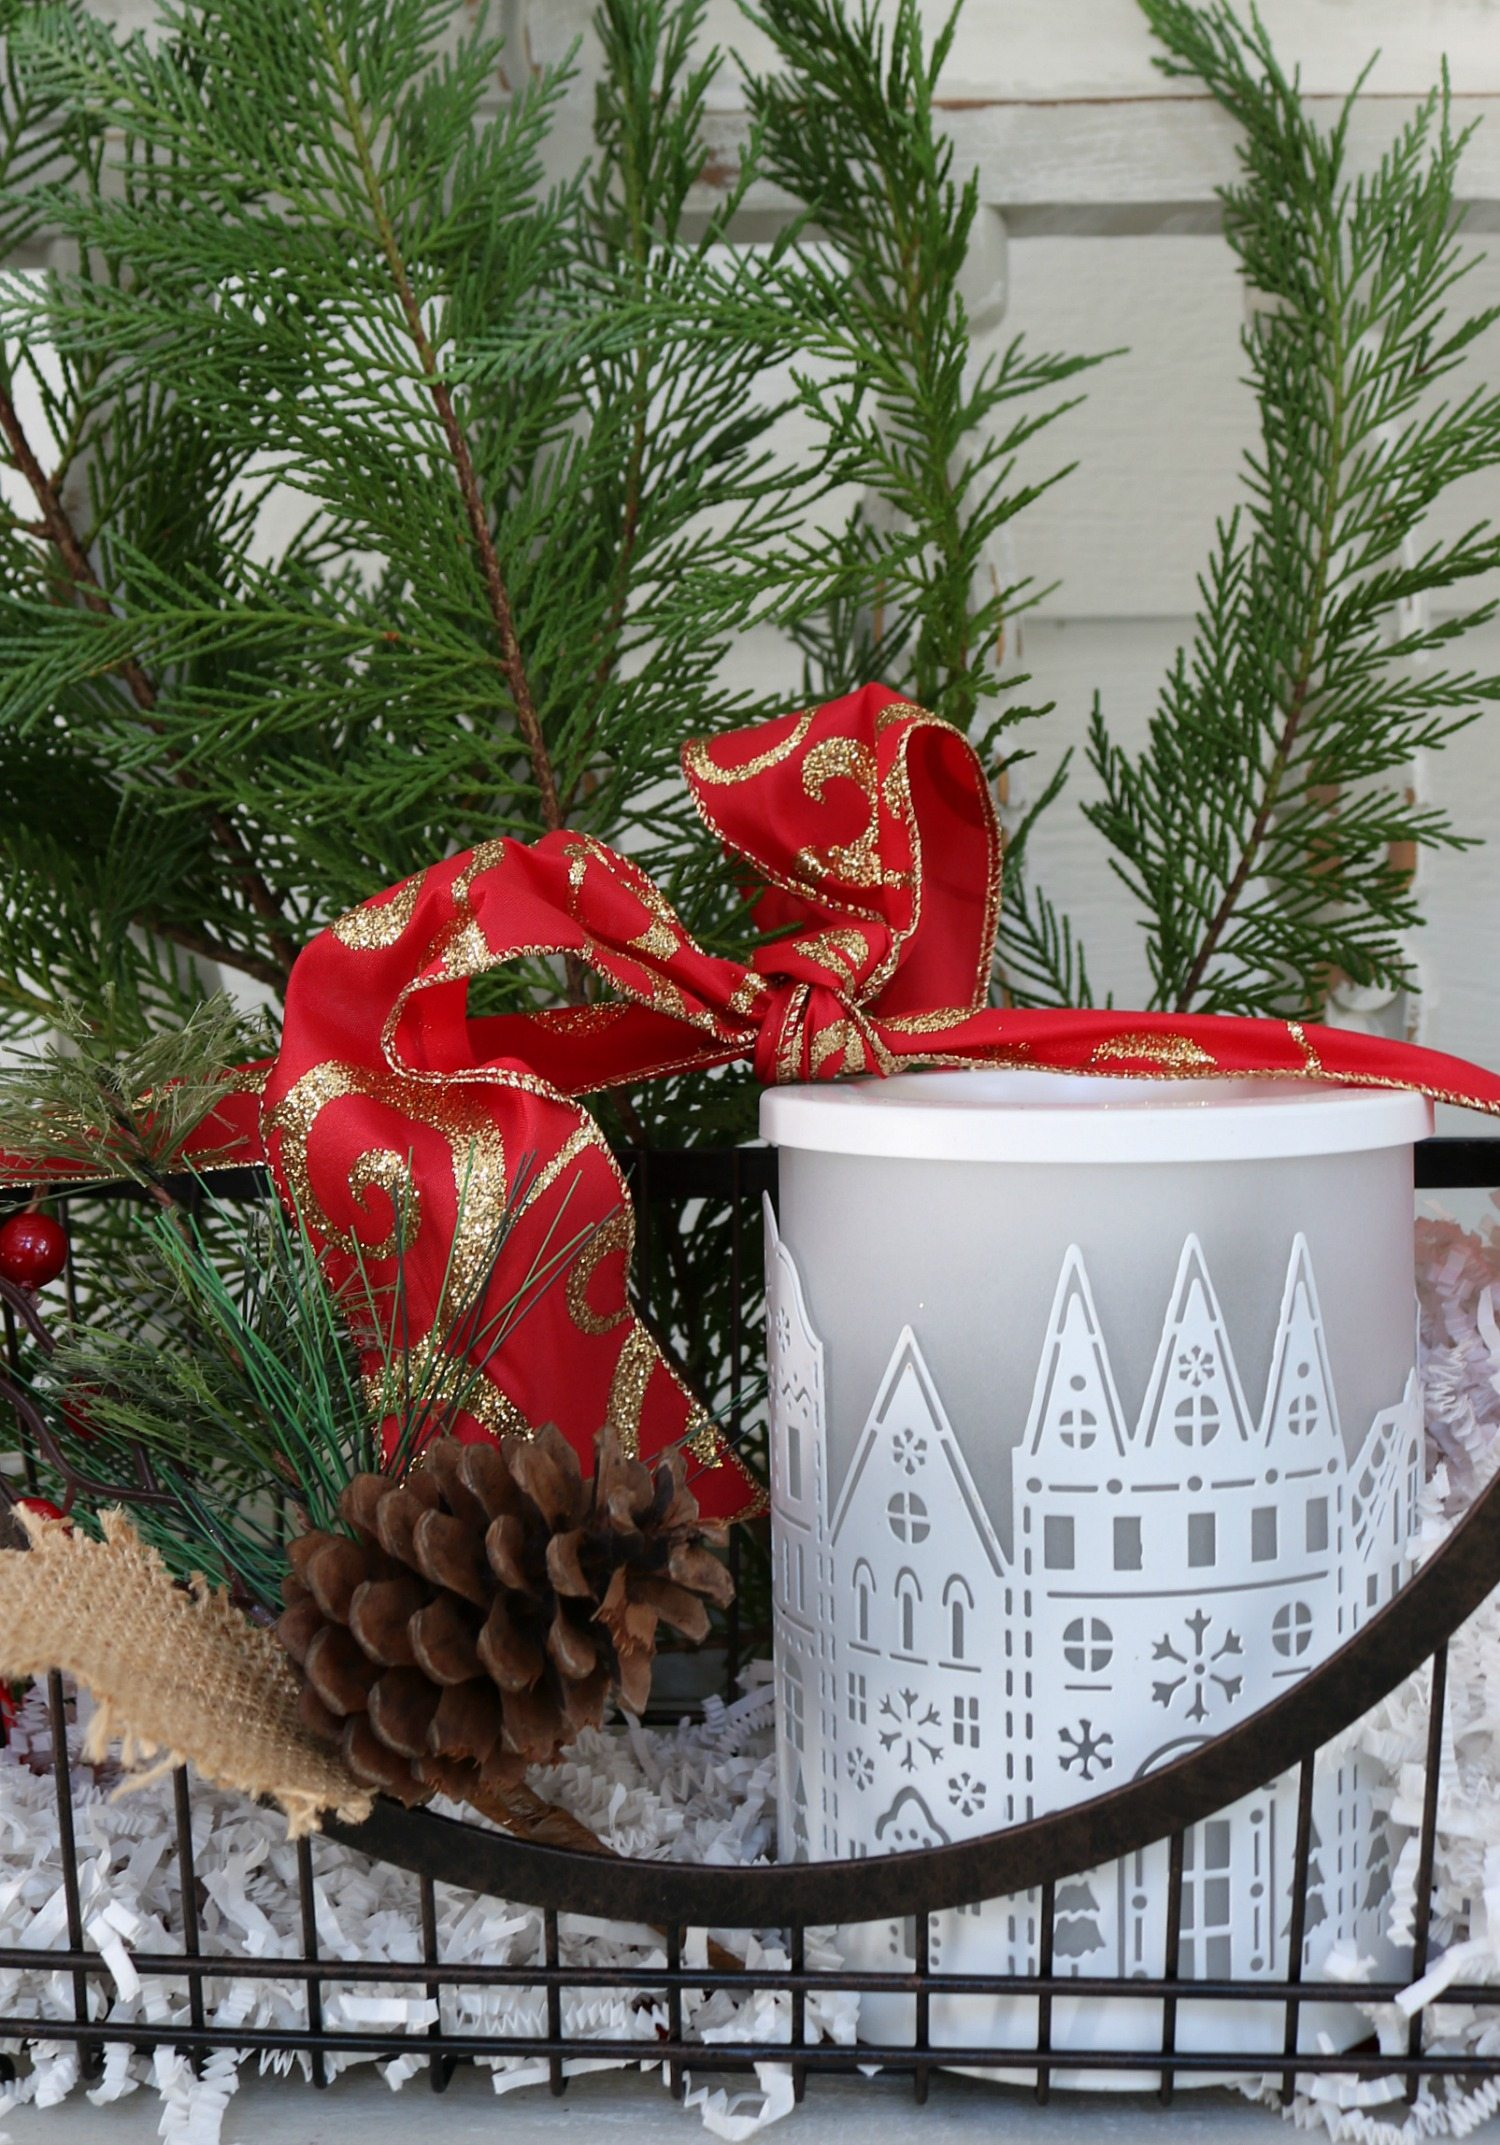 Basket filled with wax warmer for gift giving